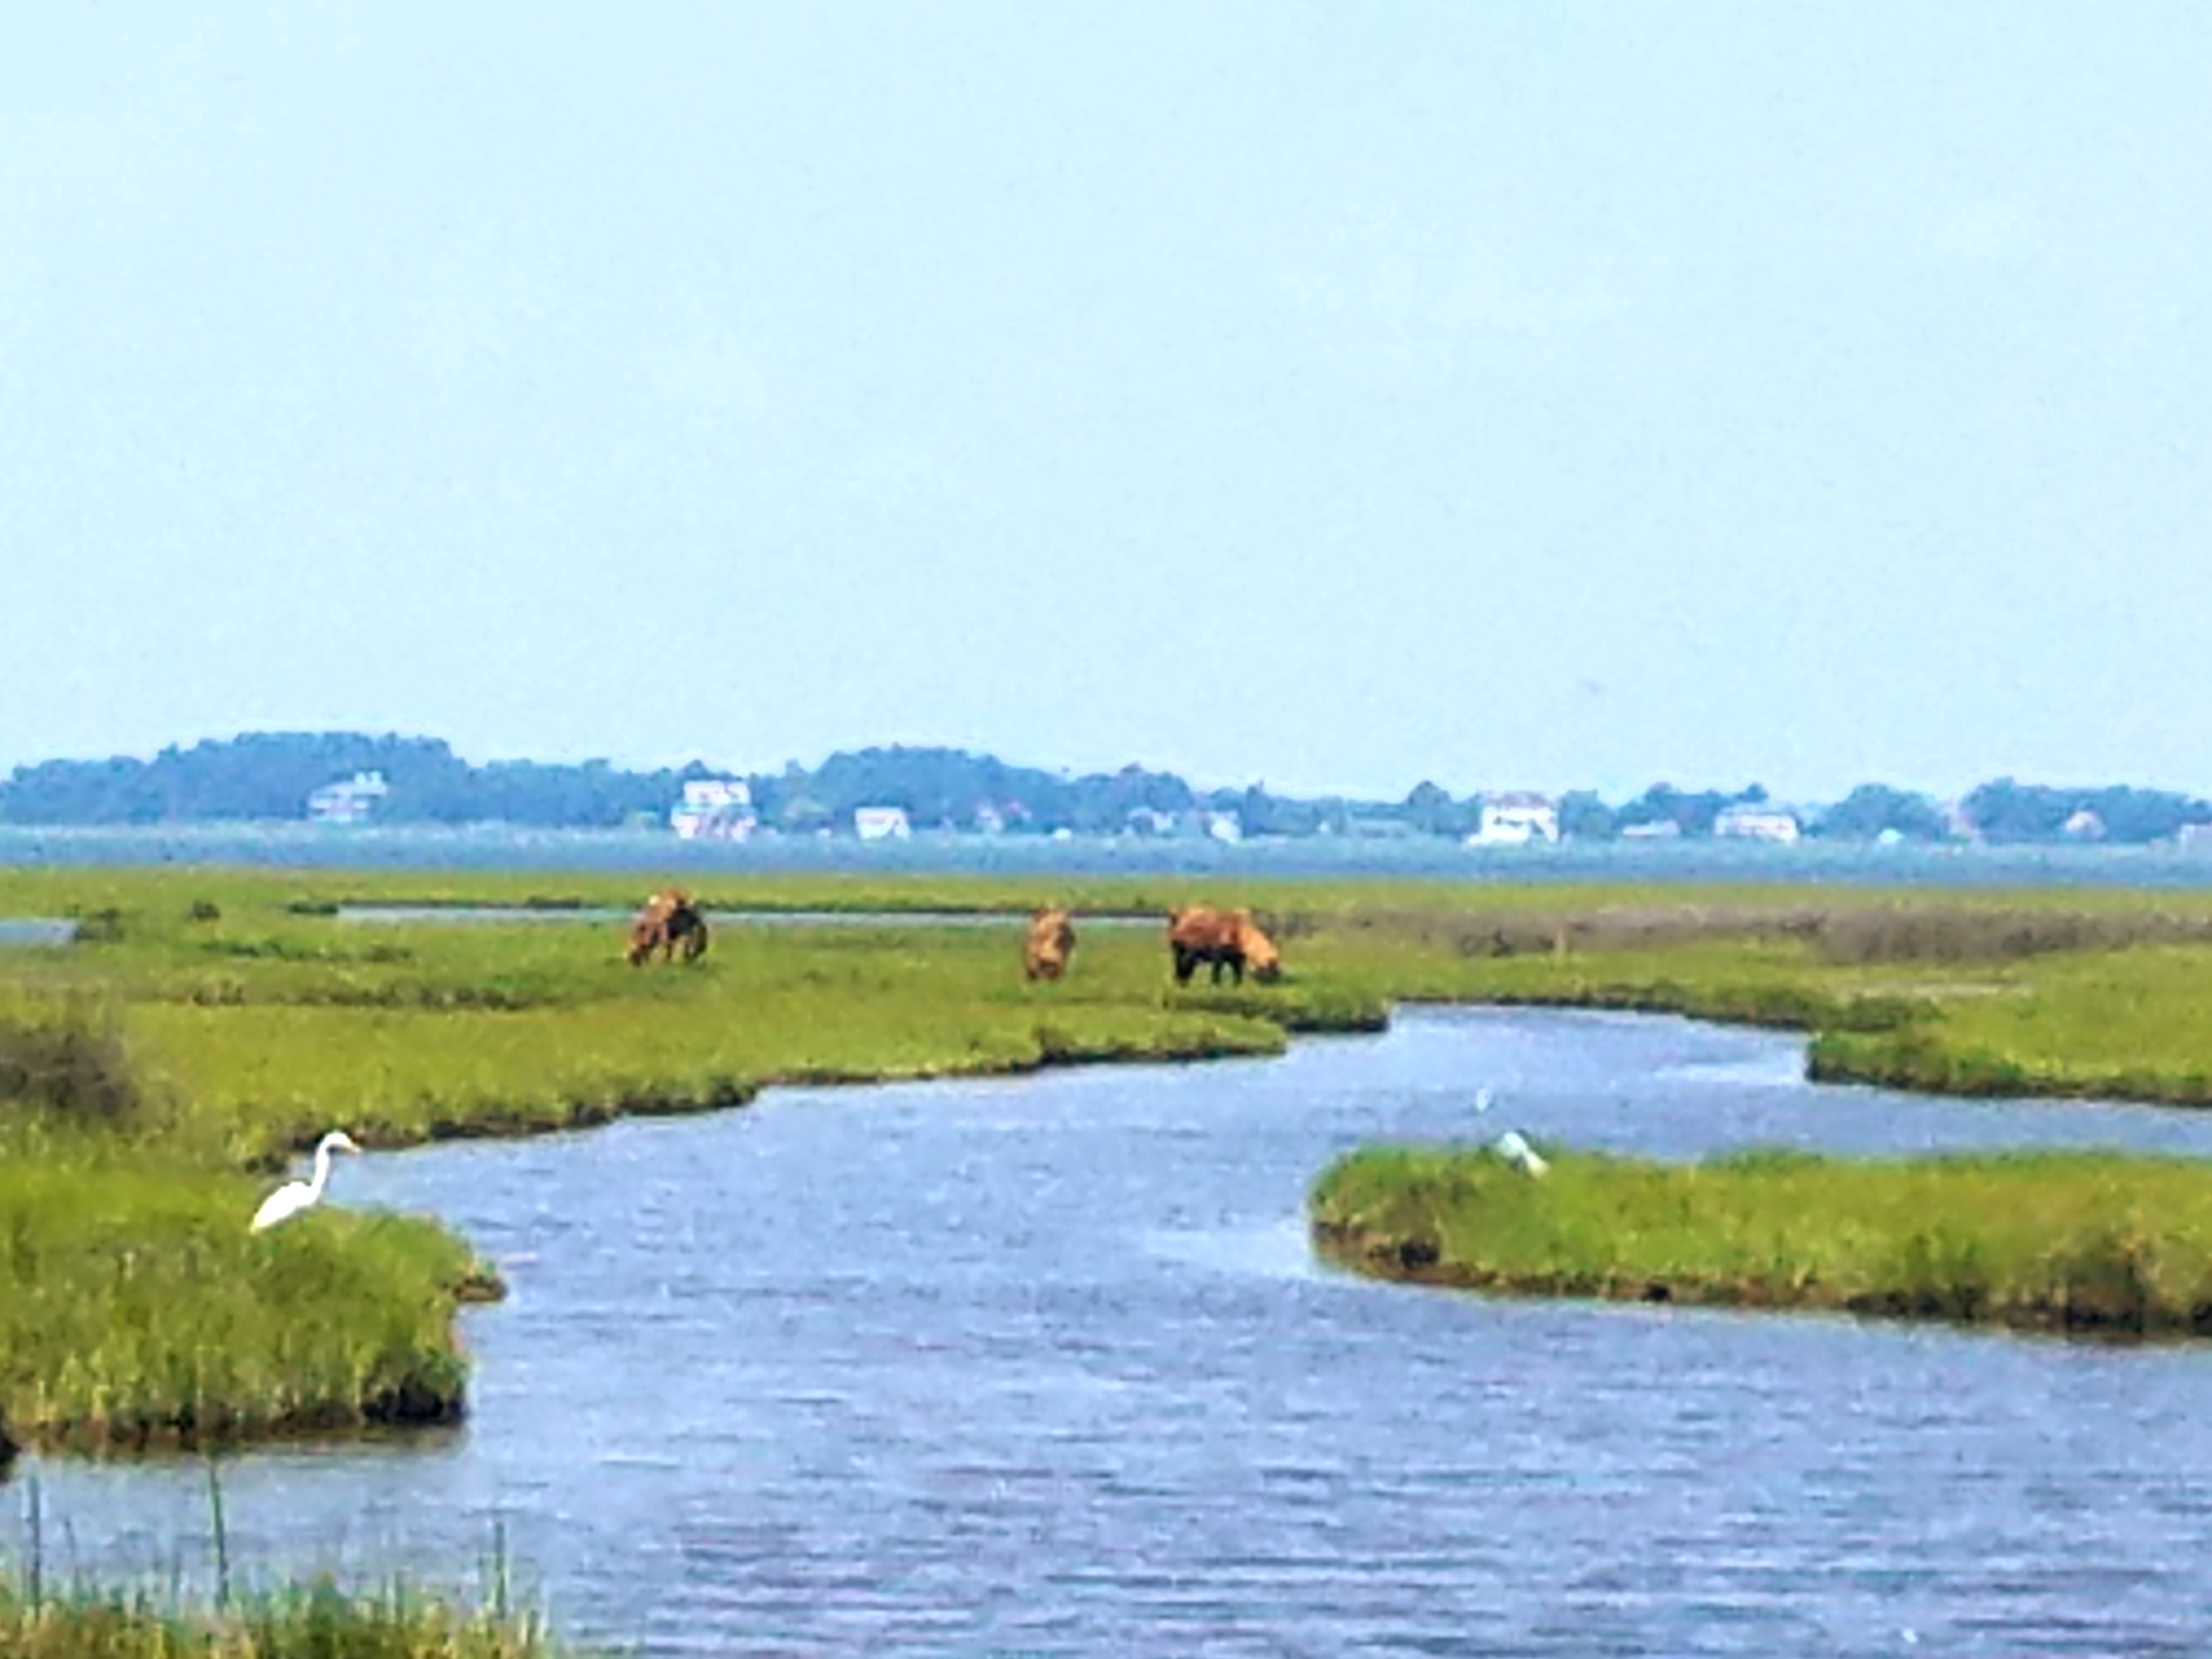 Assateague Island is known for the wild horses that roam the island. There is also enjoy swimming, camping, kayaking, paddle board, or wind surfing and more